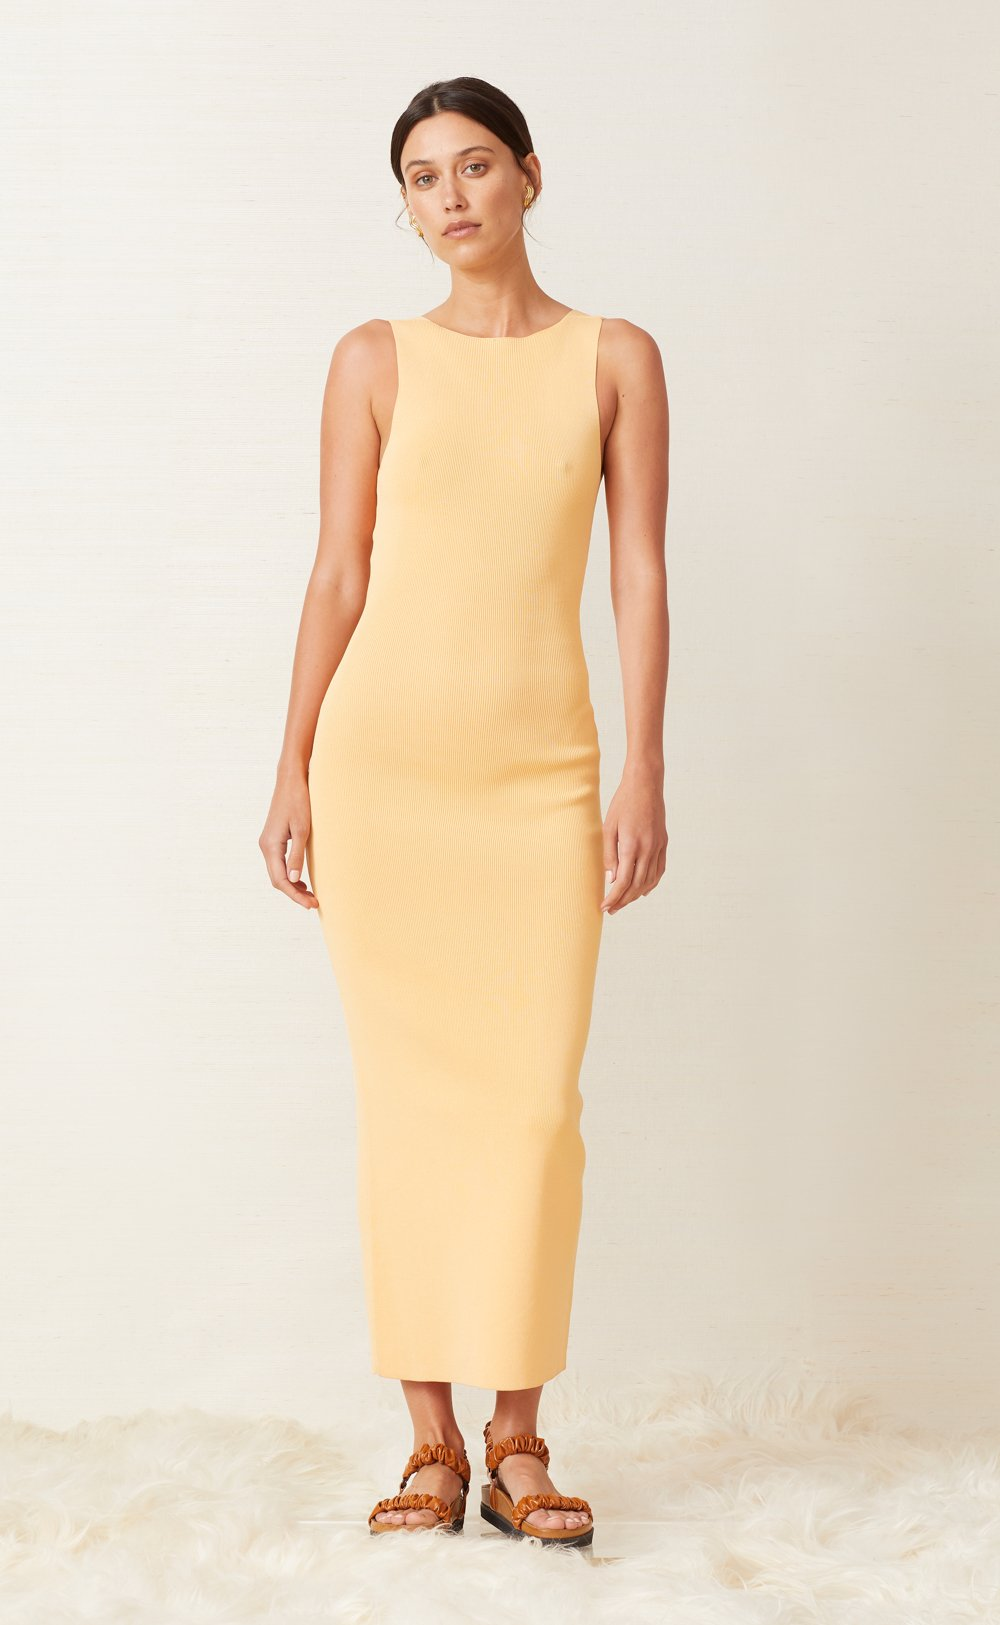 Bec & Bridge Sorbet Summer Midi Dress in Canteloupe